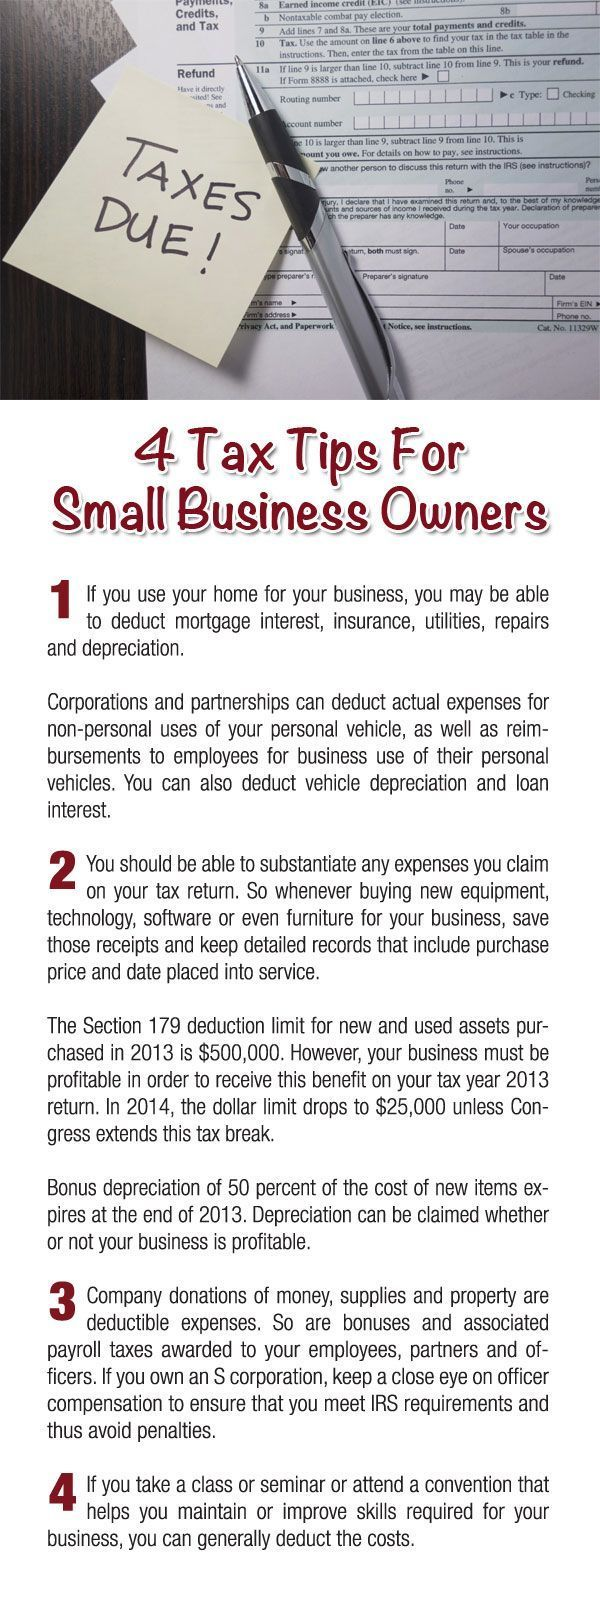 4 Tax Tips For Small Business Owners Tips Taxes Taxtime Income Tax Tips Tax Return Tips Small Business Tax Business Tax Small Business